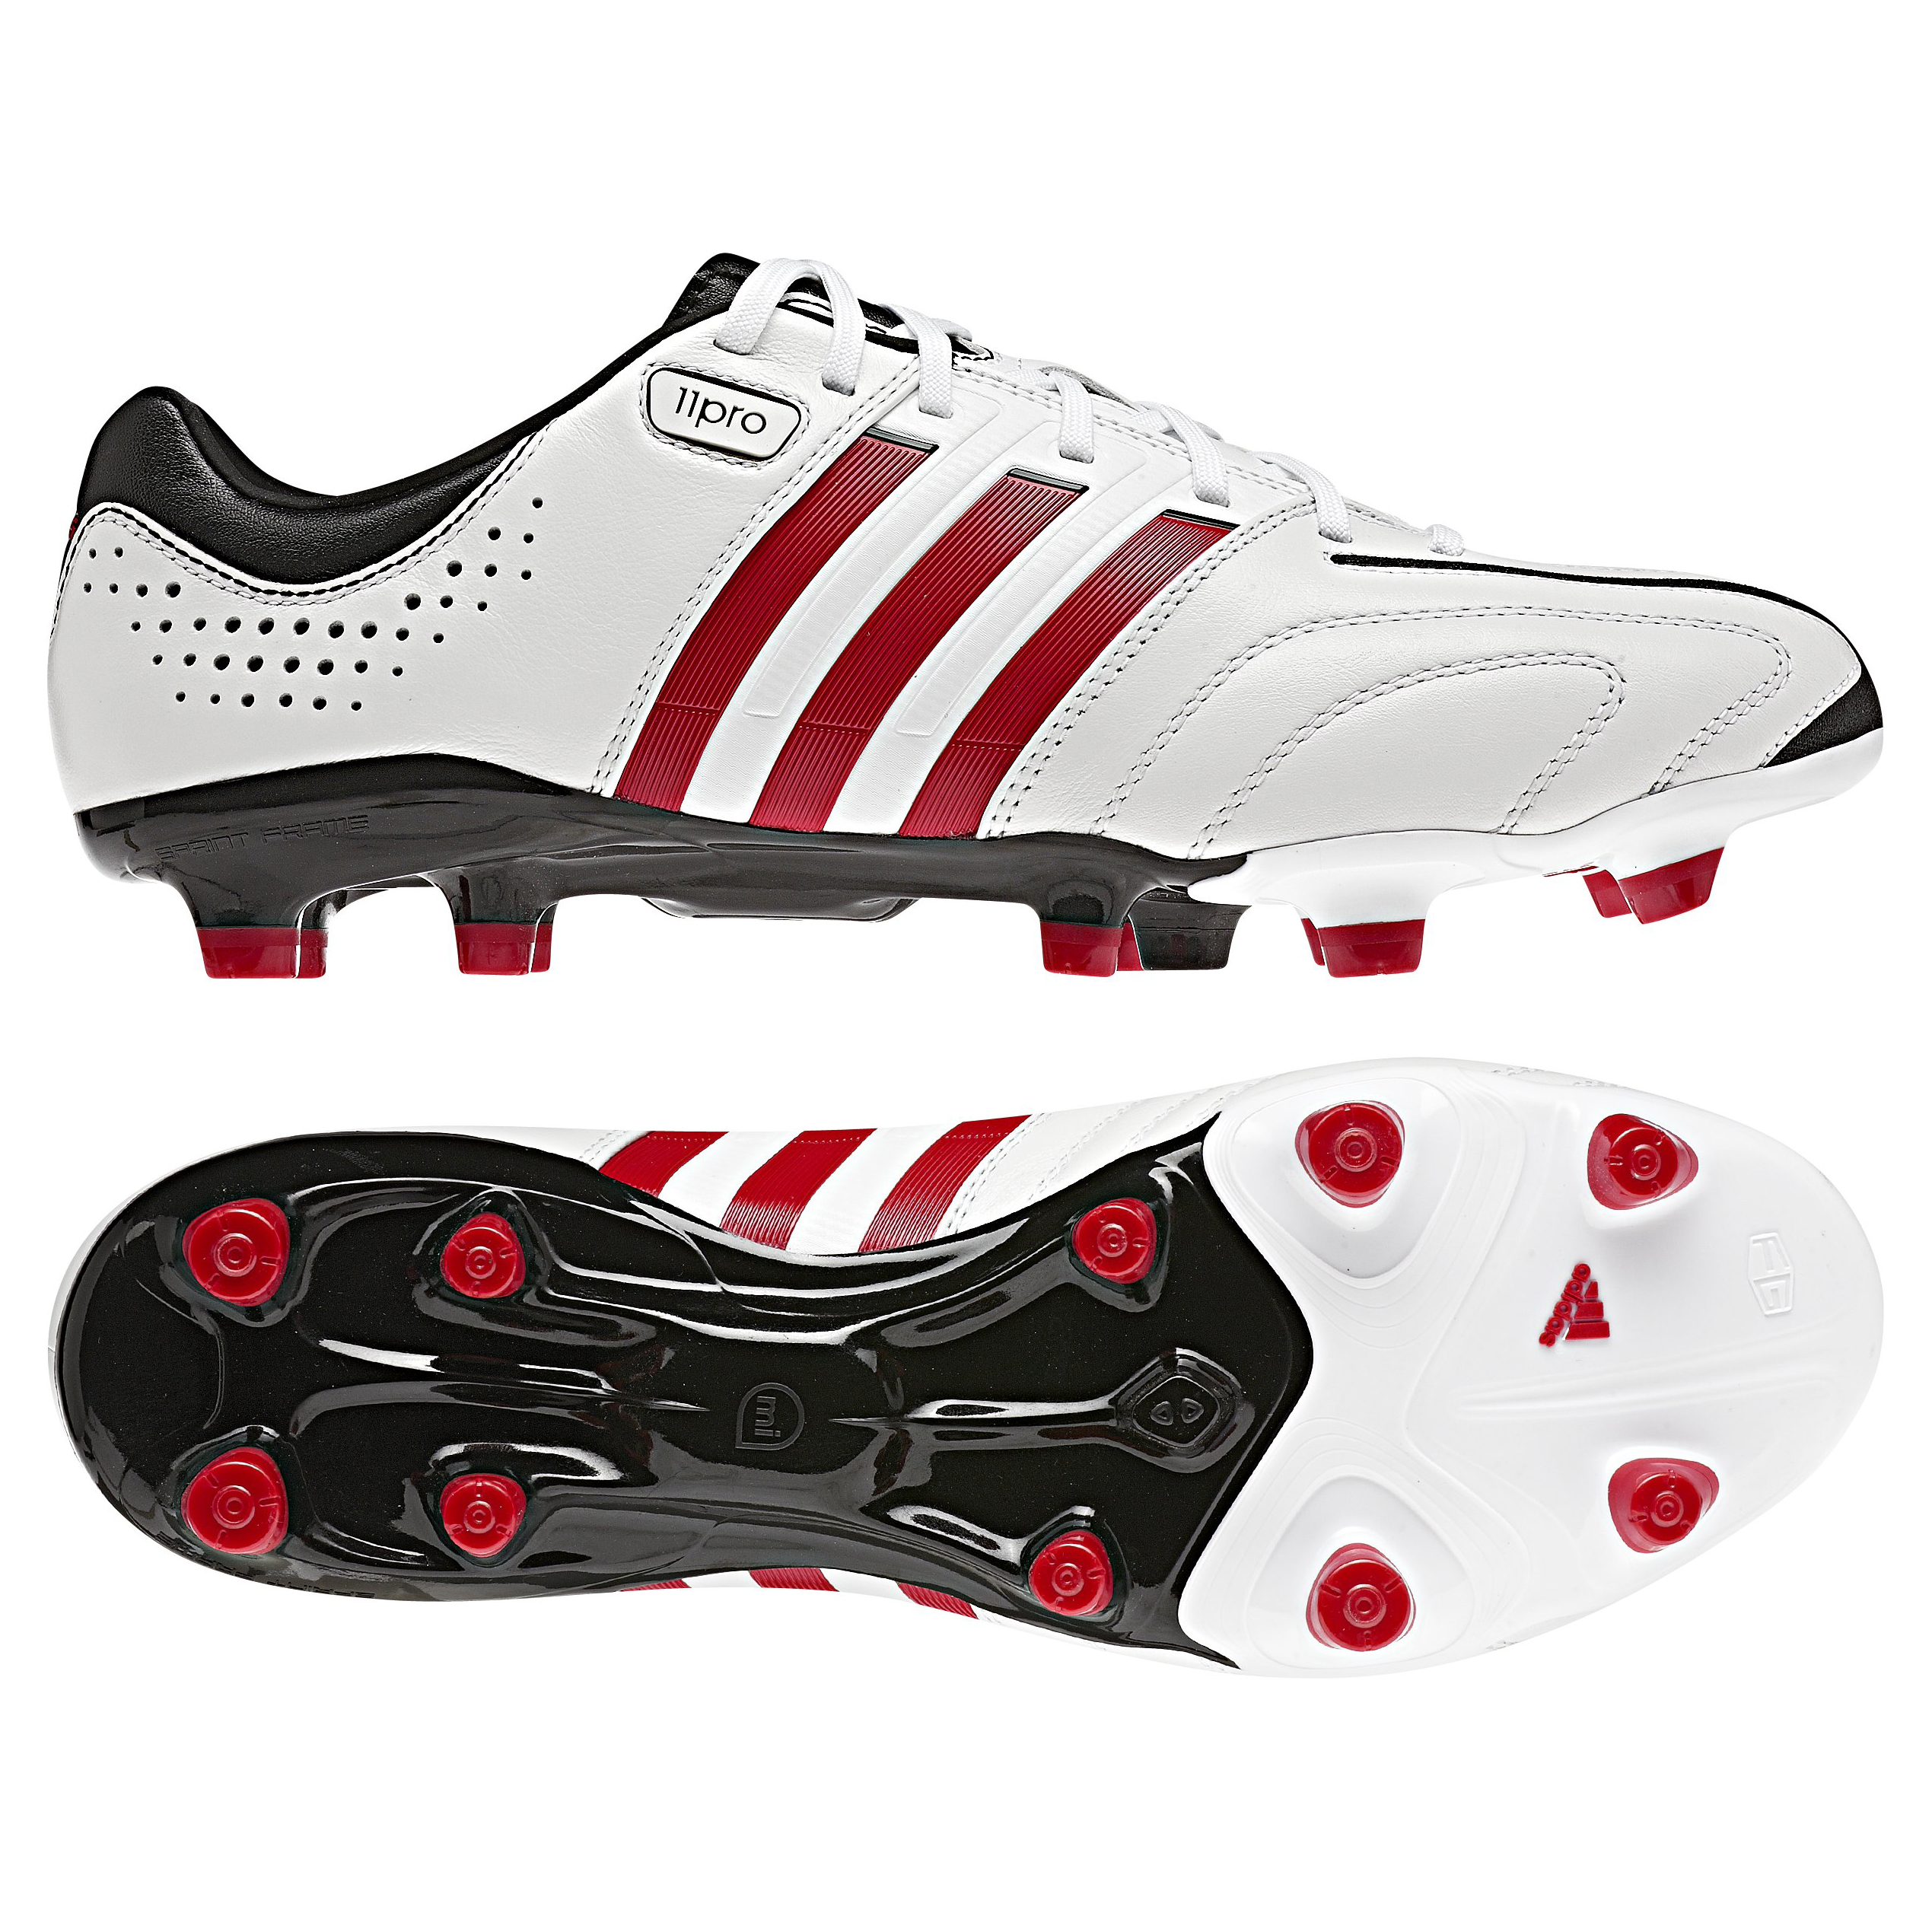 AdiPure 11Pro TRX FG White/Vivid Red/Black